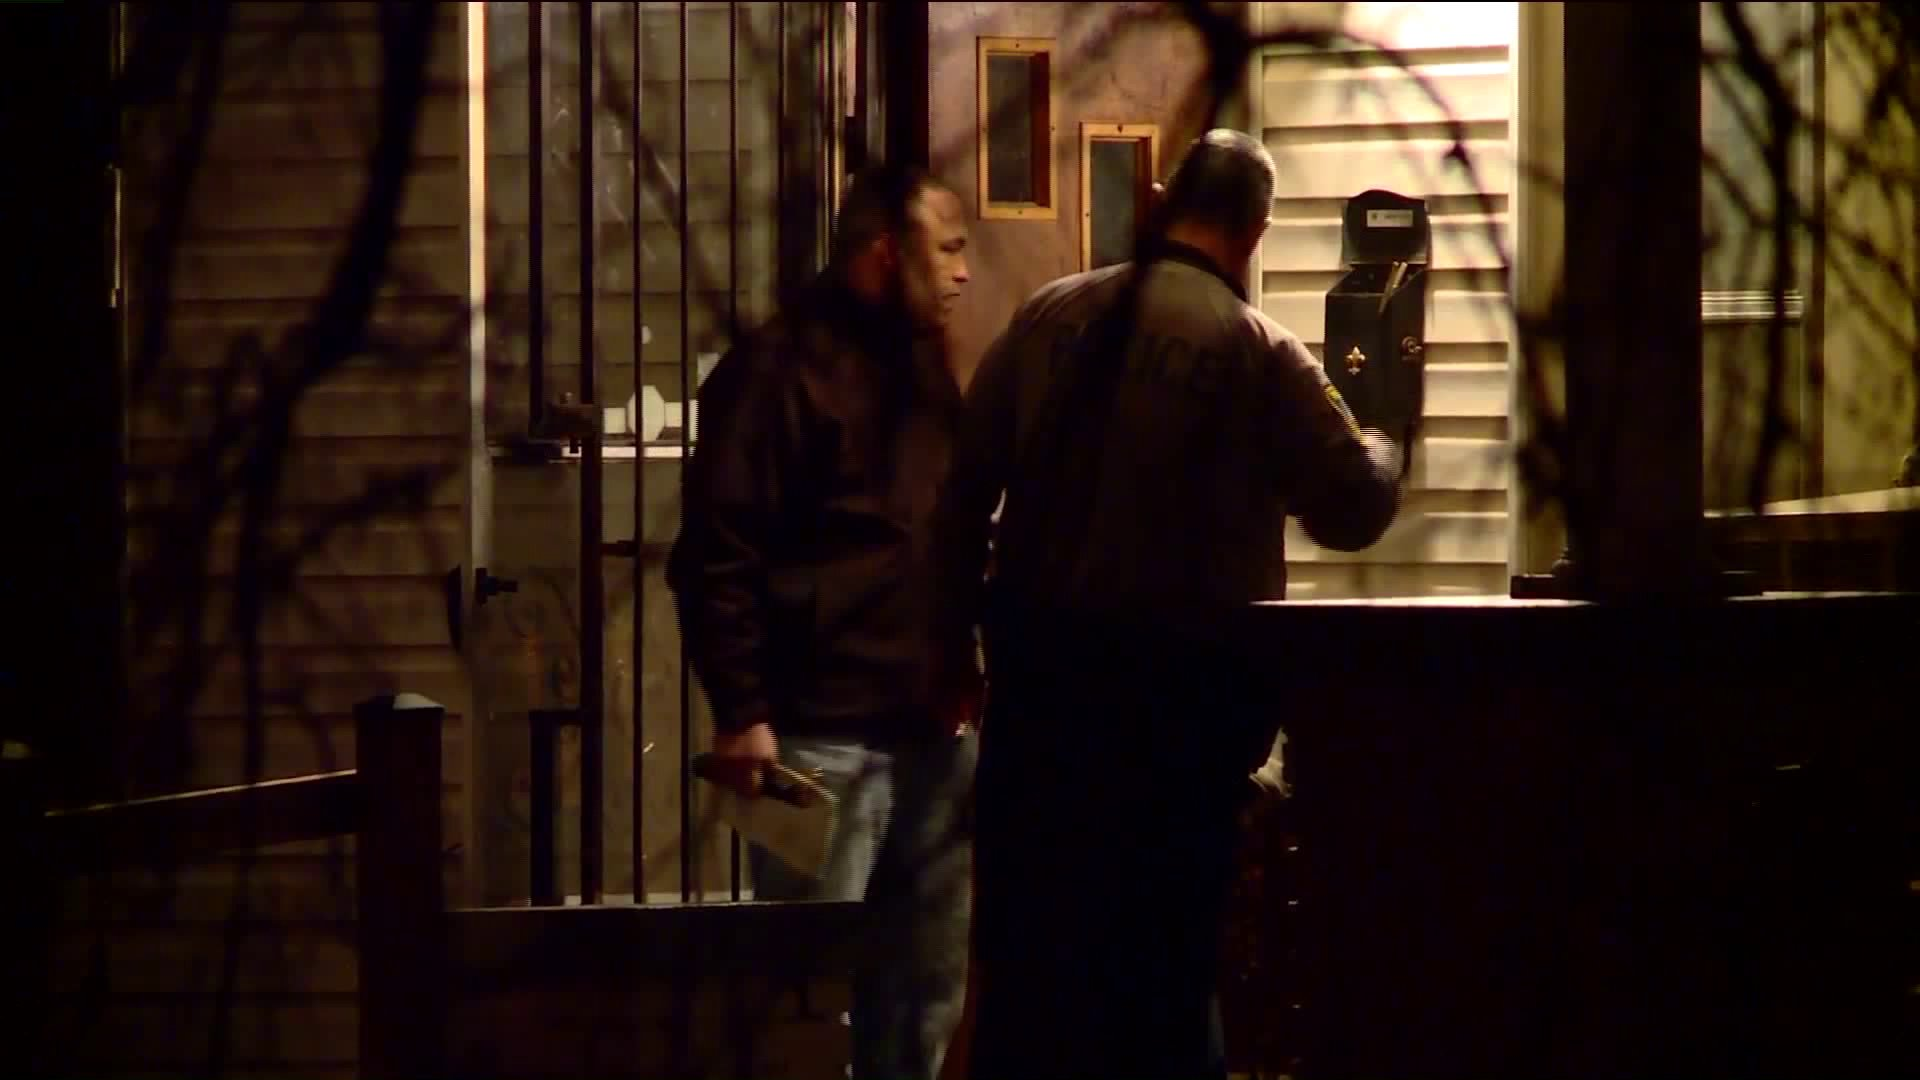 78-year-old woman shot on her front porch in N.E. Oklahoma City